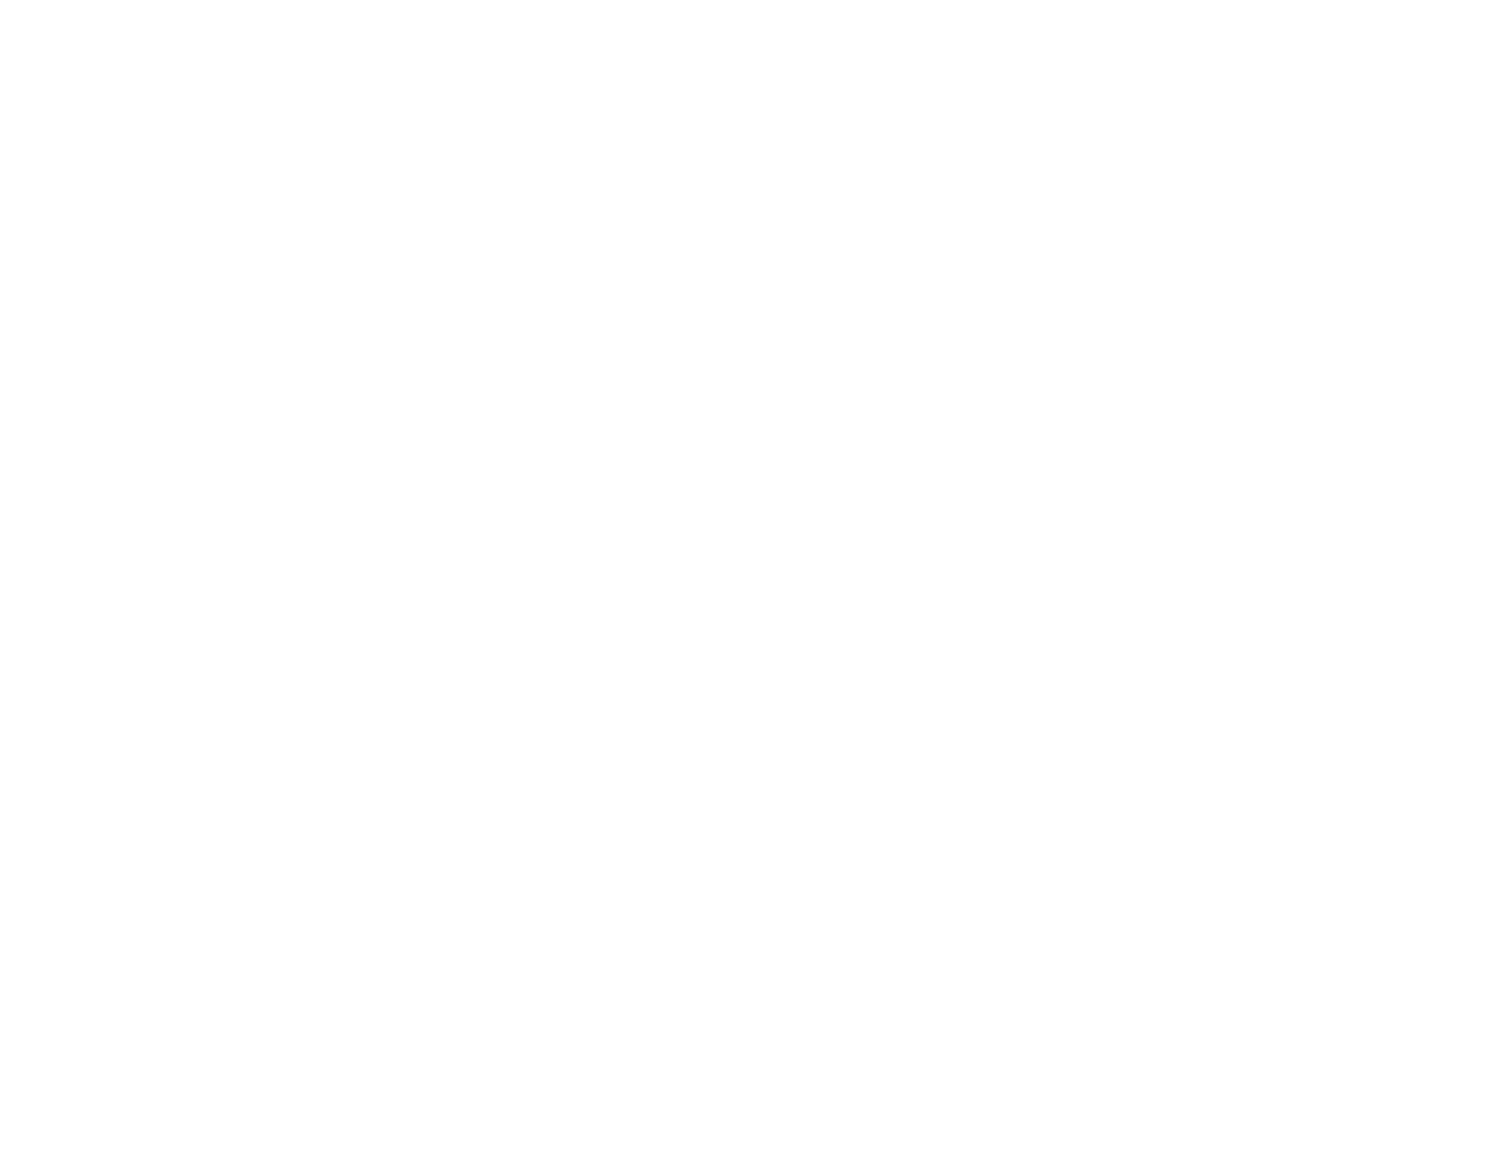 Bow & Arrow Brewing Co.